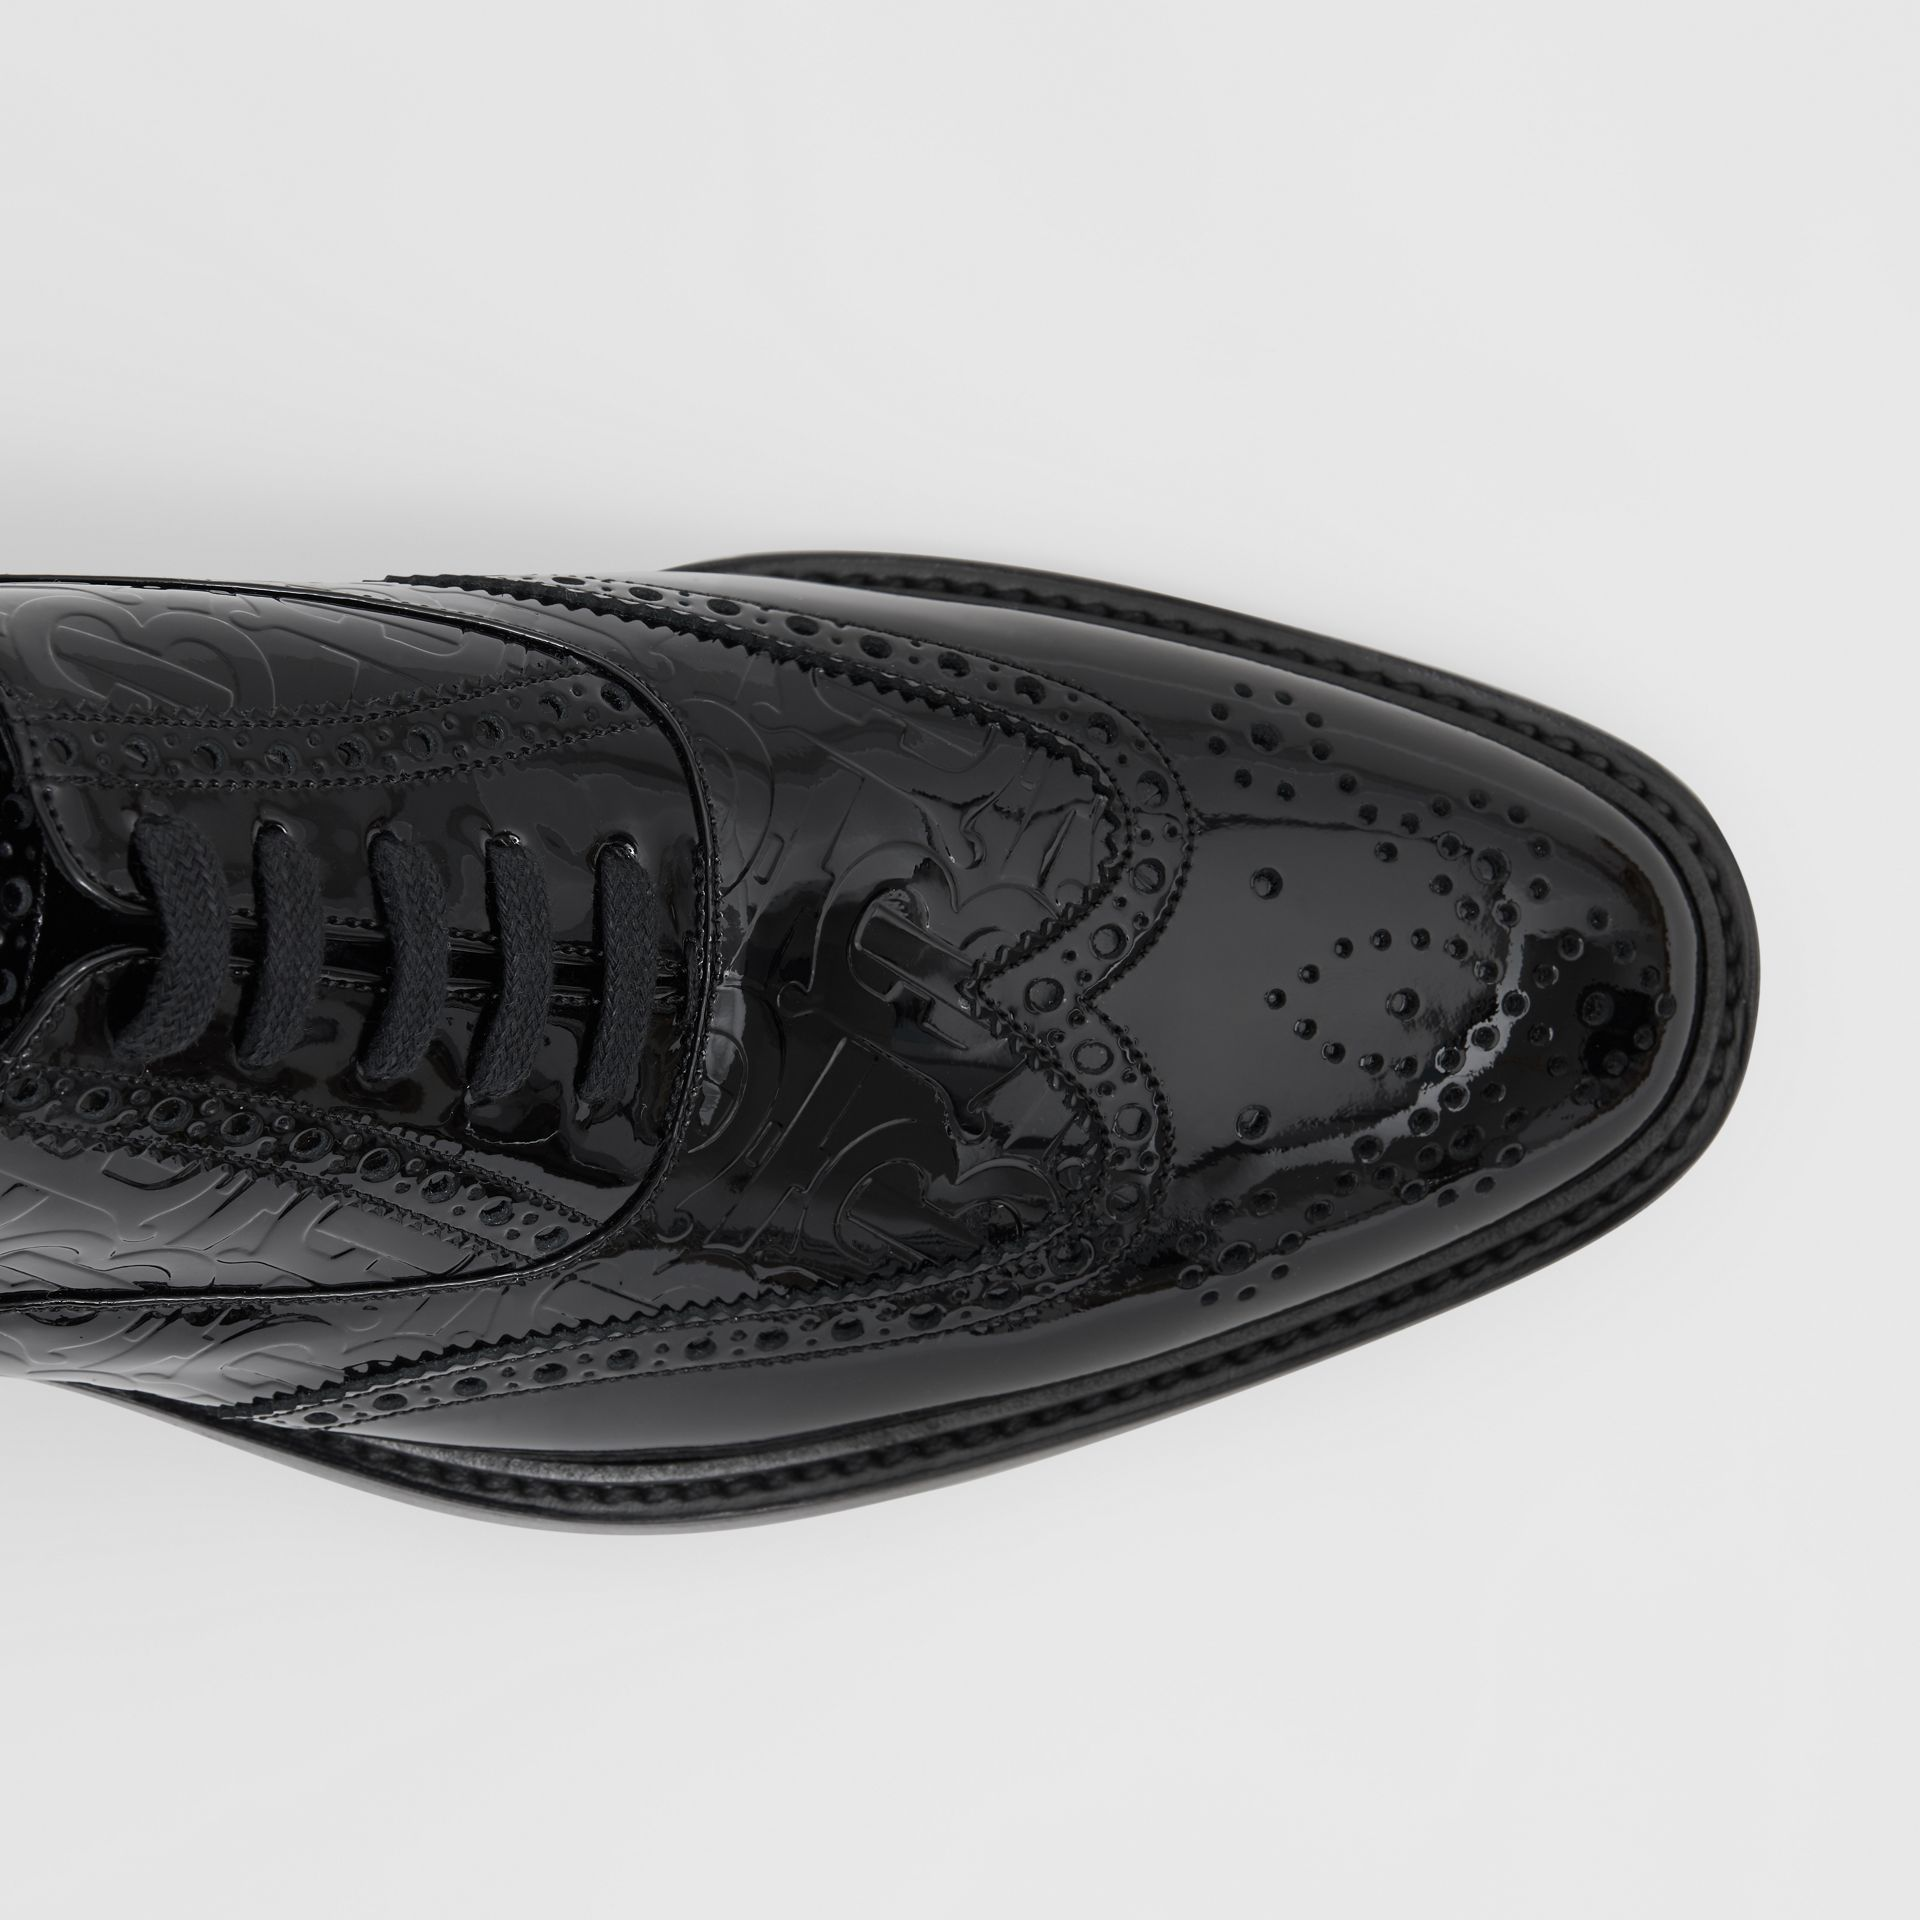 D-ring Detail Monogram Patent Leather Brogues in Black - Men | Burberry - gallery image 1